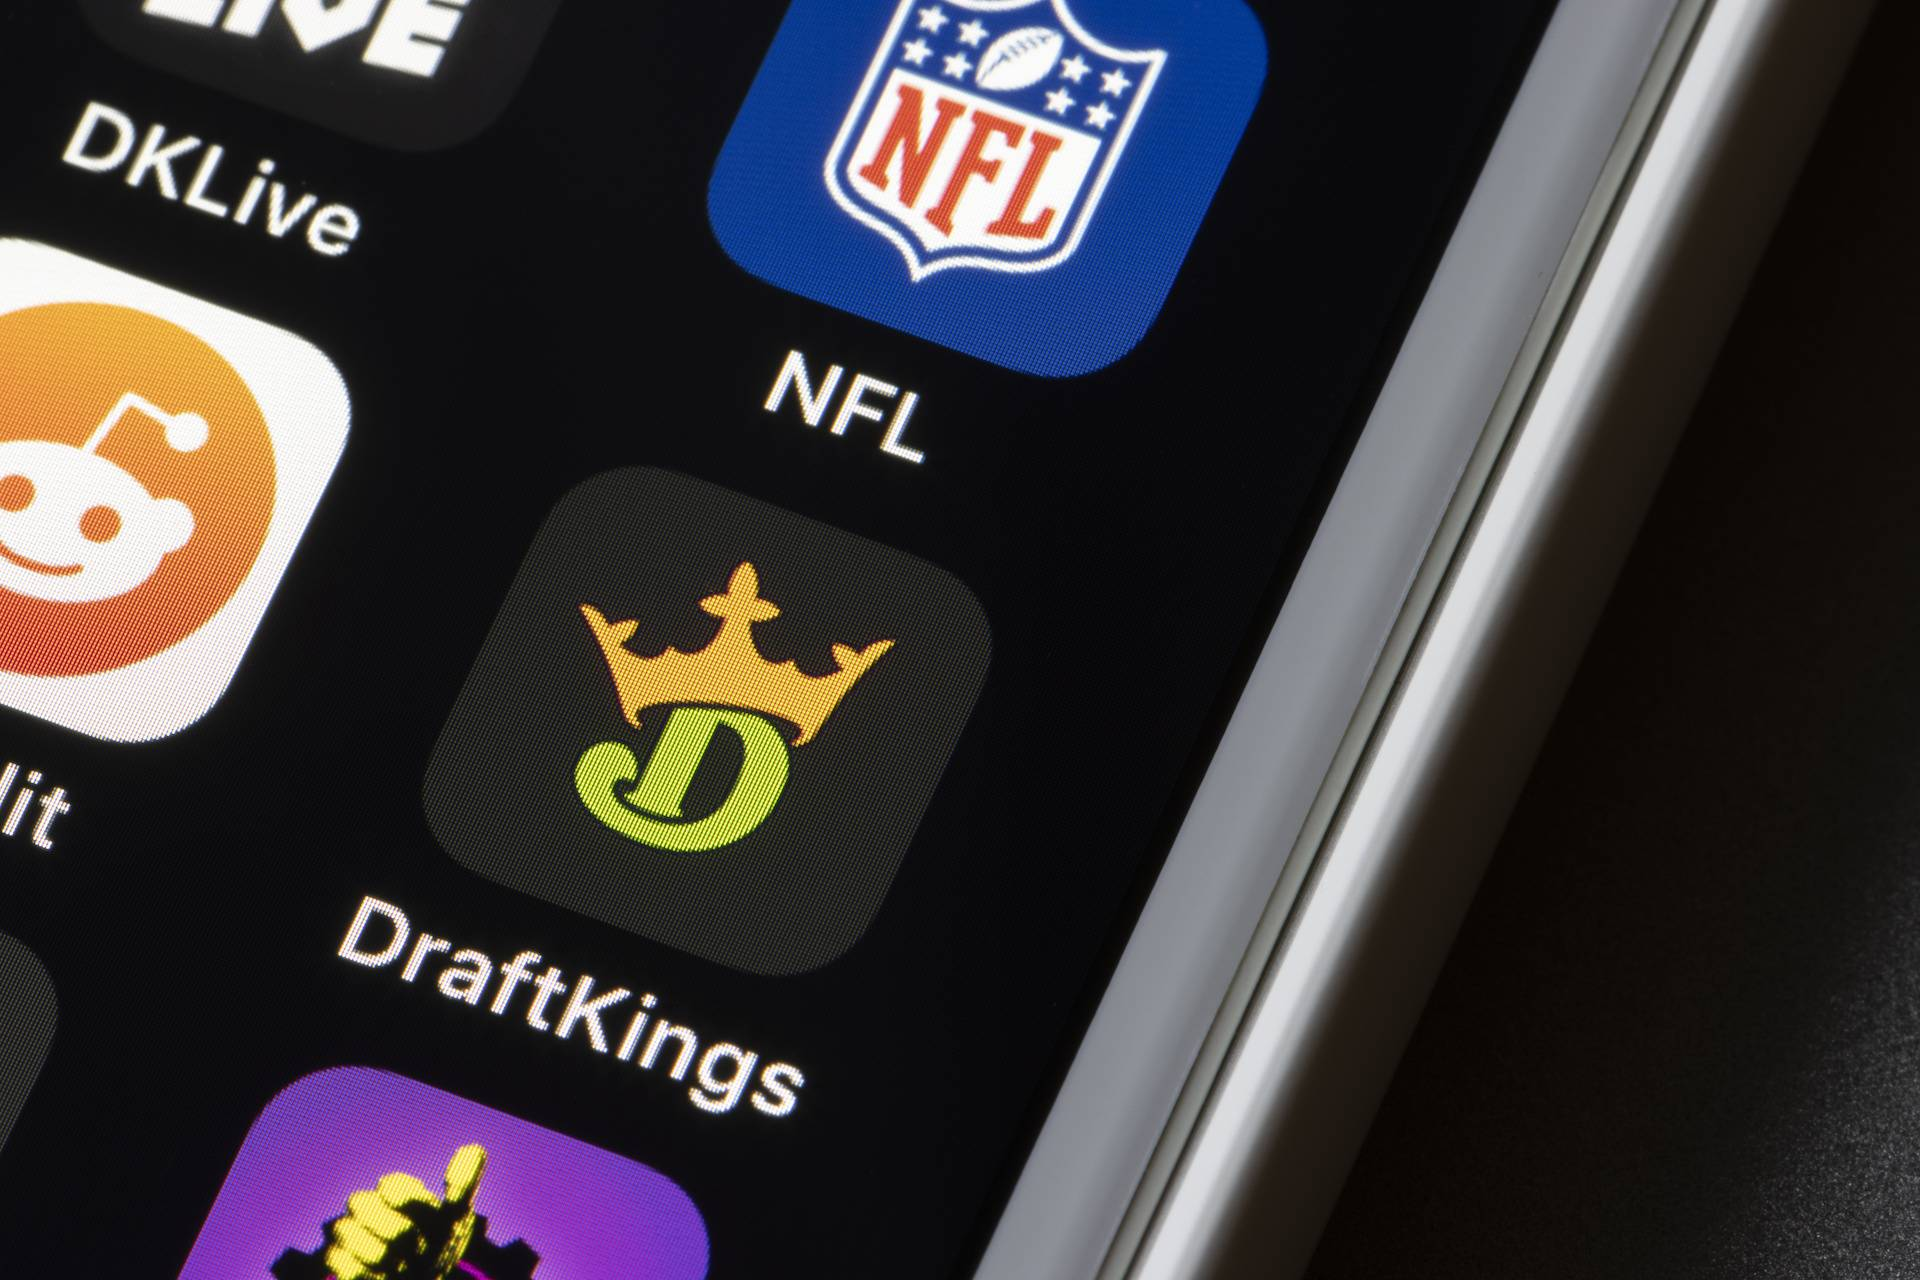 DraftKing stock forecast (NASDAQ:DKNG) – here's what you need to know